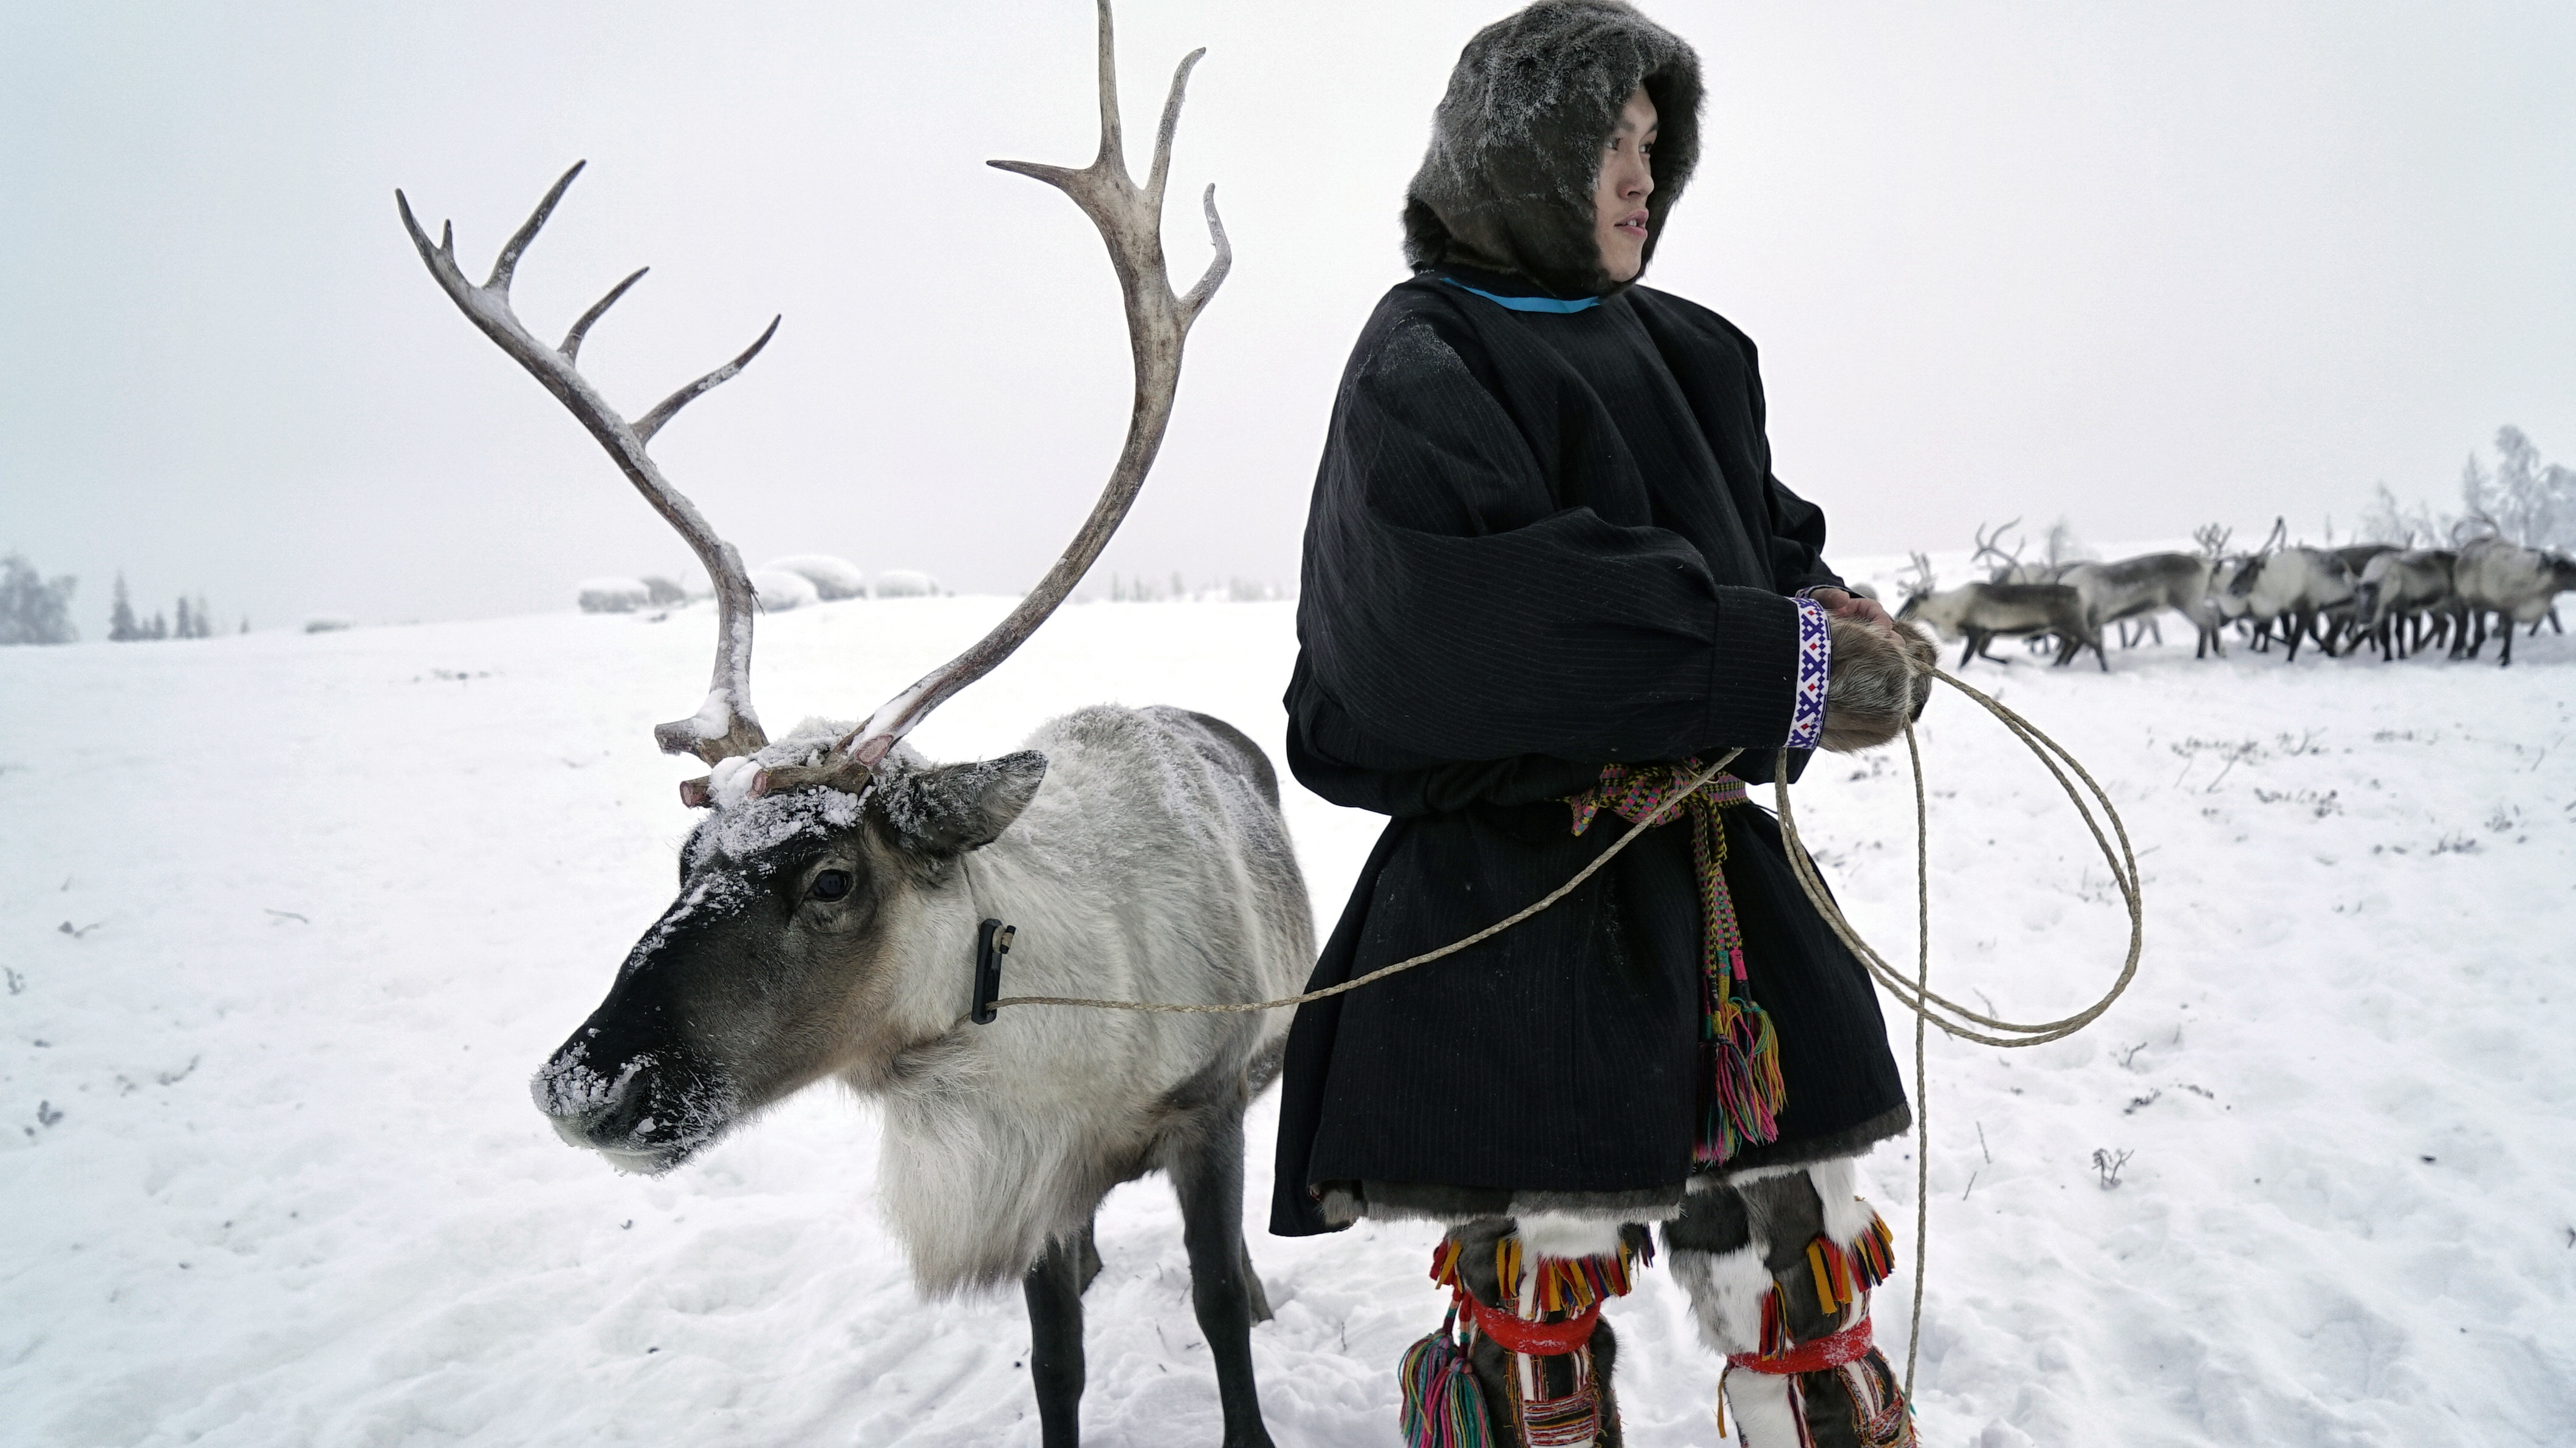 Maxime Okotetto, 19, has been herding reindeer since he was a boy. He says the rapid oil and gas development of recent years is destroying the animals' grazing land.